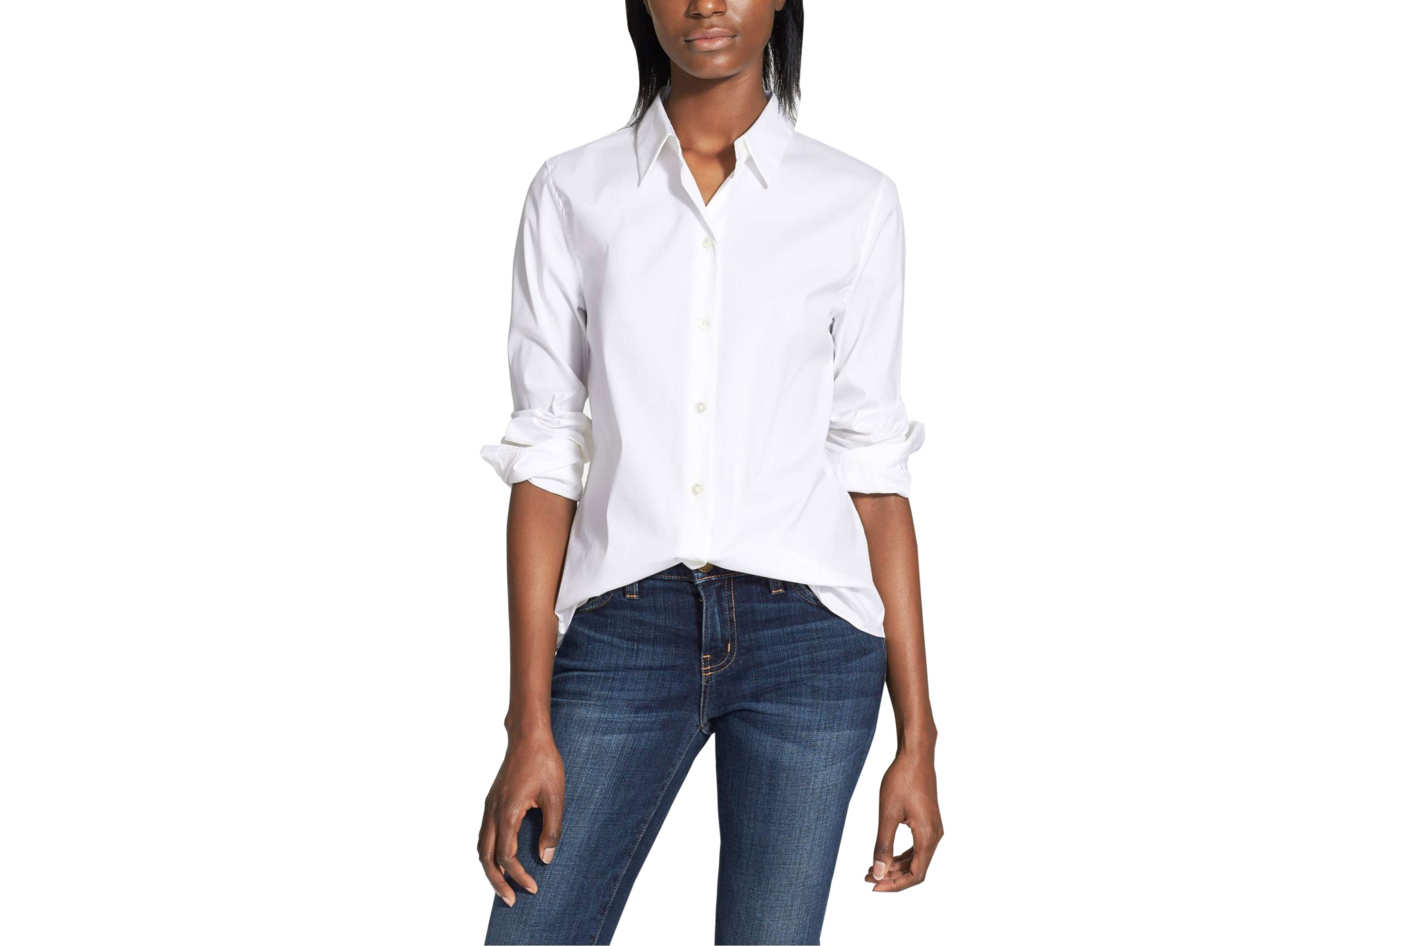 Perfect is just the word for it—a white shirt goes effortlessly with any ensemble, whether dressed down with denim, or up with a ball skirt a la the designer Carolina Herrera's most famous look. Instead of thinking of a white shirt as a limiting, boring piece, consider it a blank canvas on which you can create your own personal style.